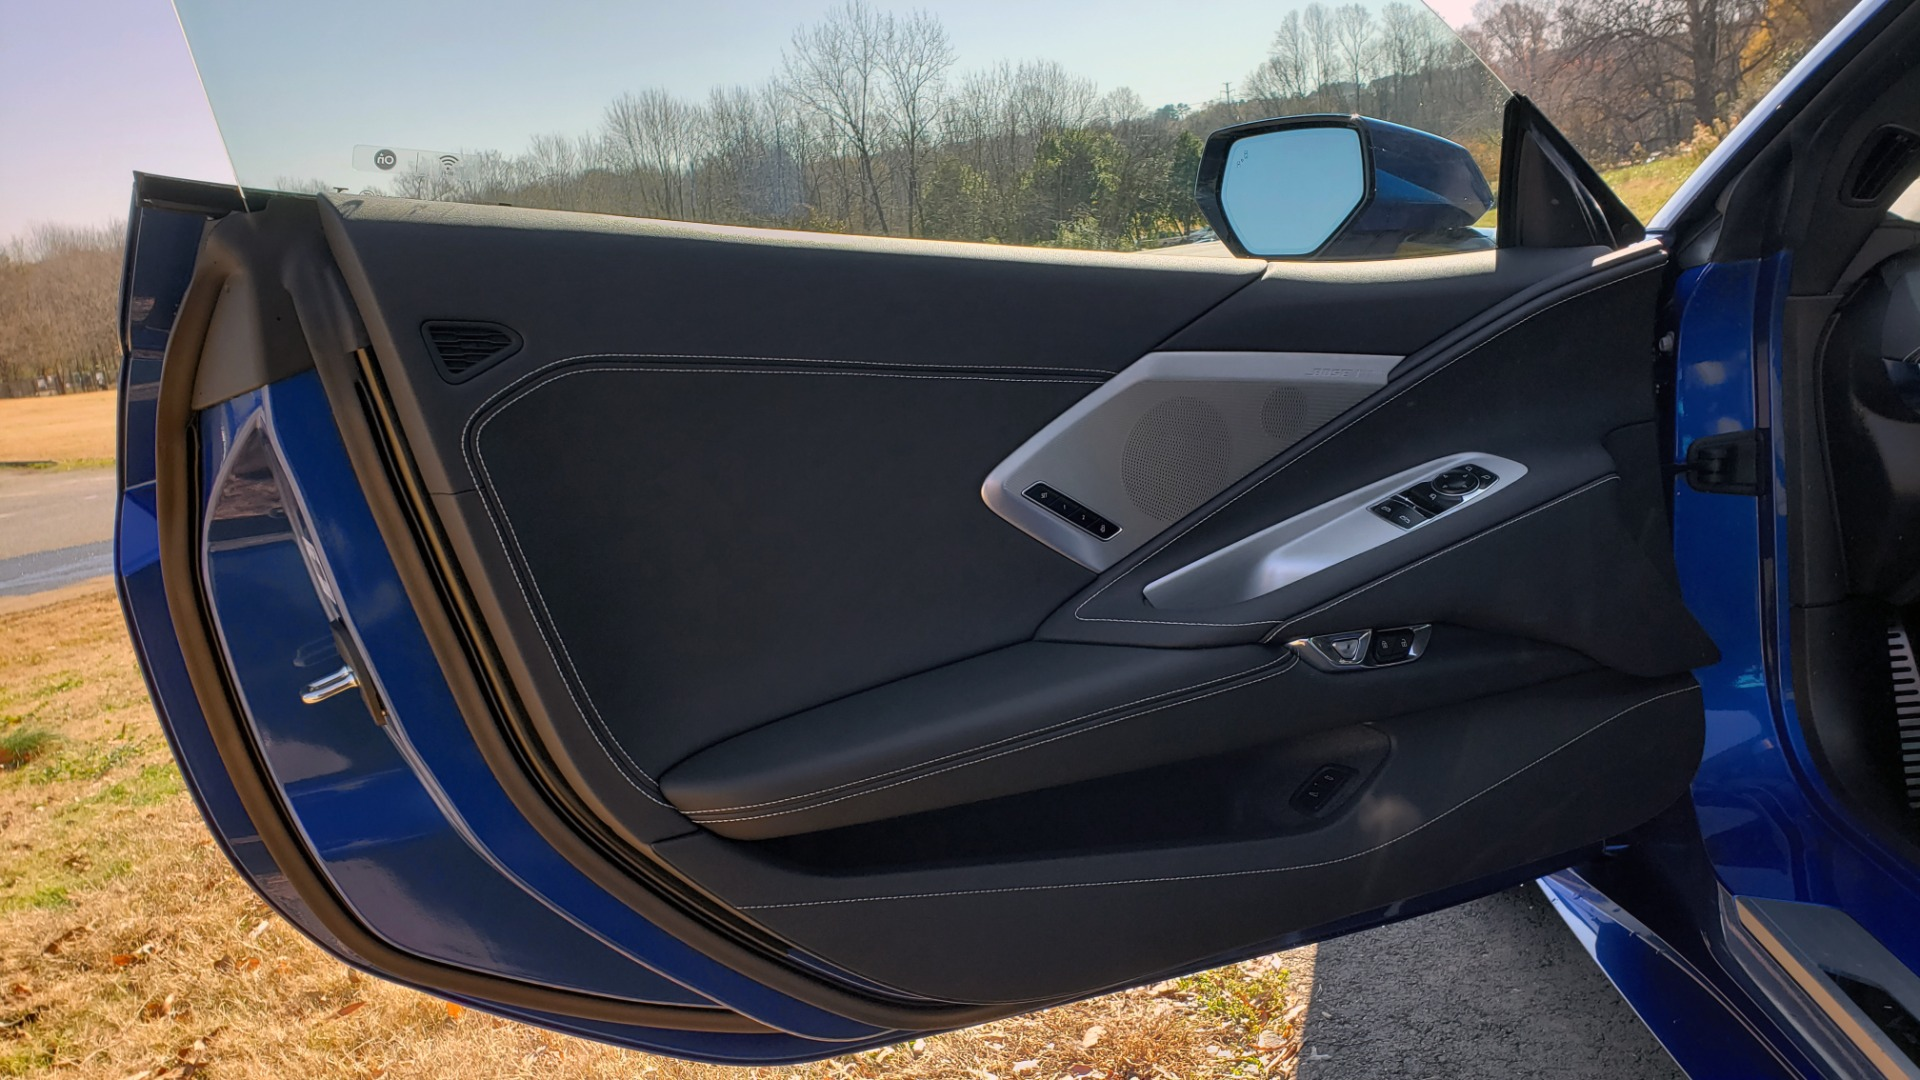 Used 2020 Chevrolet C8 CORVETTE STINGRAY 2LT COUPE / NAV / HUD / BOSE / GT2 SEATS / FRONT LIFT / REARVIEW for sale Sold at Formula Imports in Charlotte NC 28227 52